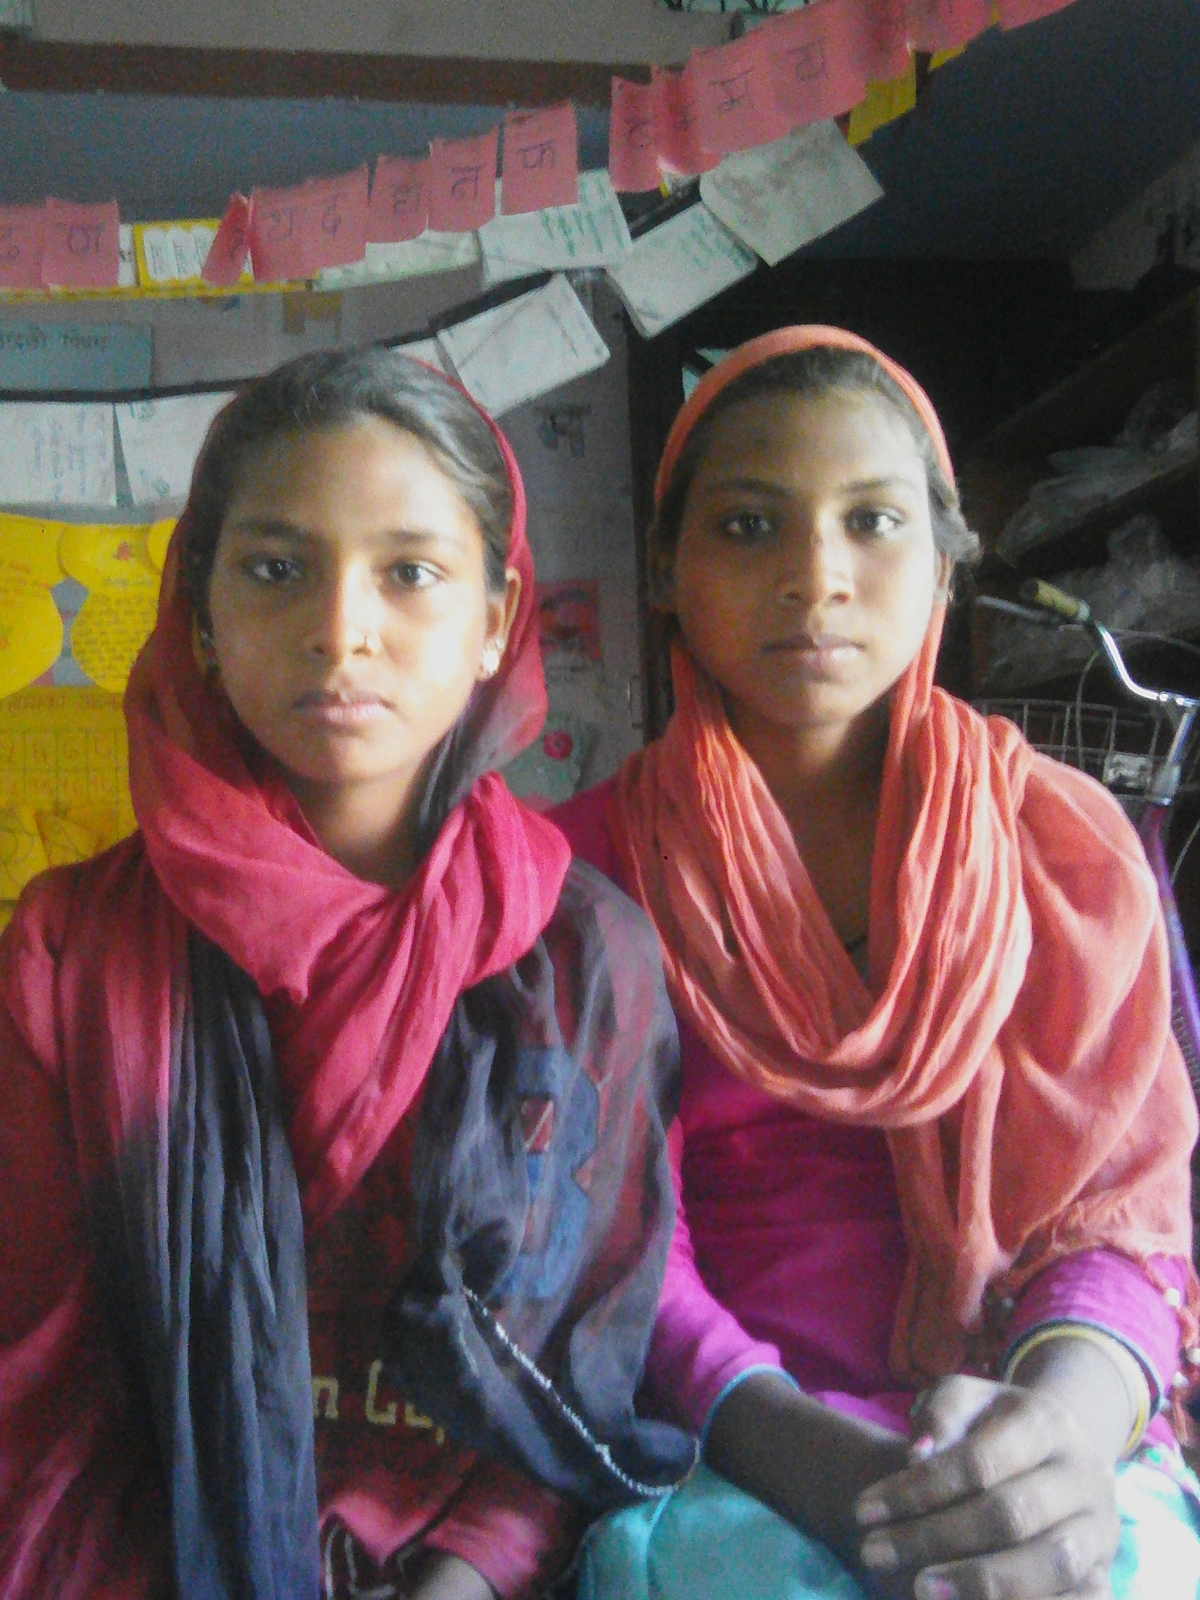 From garbage collection to knowledge collection! The story of two girls!